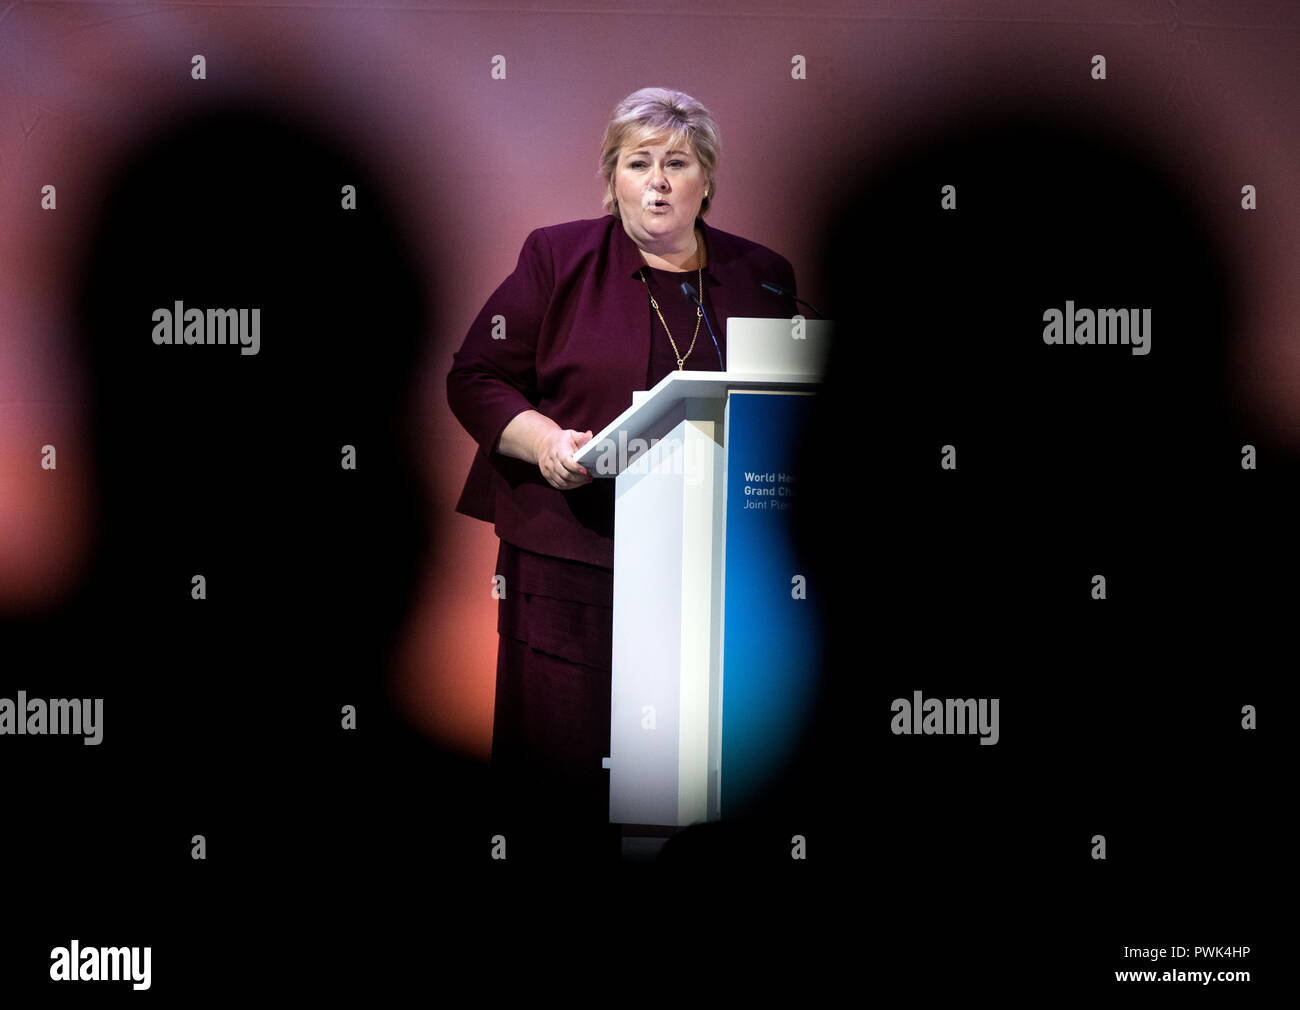 Berlin, Germany. 16 October 2018, Berlin: 16 October 2018, Germany, Berlin: Erna Solberg, Prime Minister of Norway, speaking at the closing event of the World Health Summit 2018. 2,000 participants and 300 speakers from 100 countries discussed pressing issues of global health care and the prevention of preventable diseases at the three-day event. Photo: Bernd von Jutrczenka/dpa Credit: dpa picture alliance/Alamy Live News - Stock Image